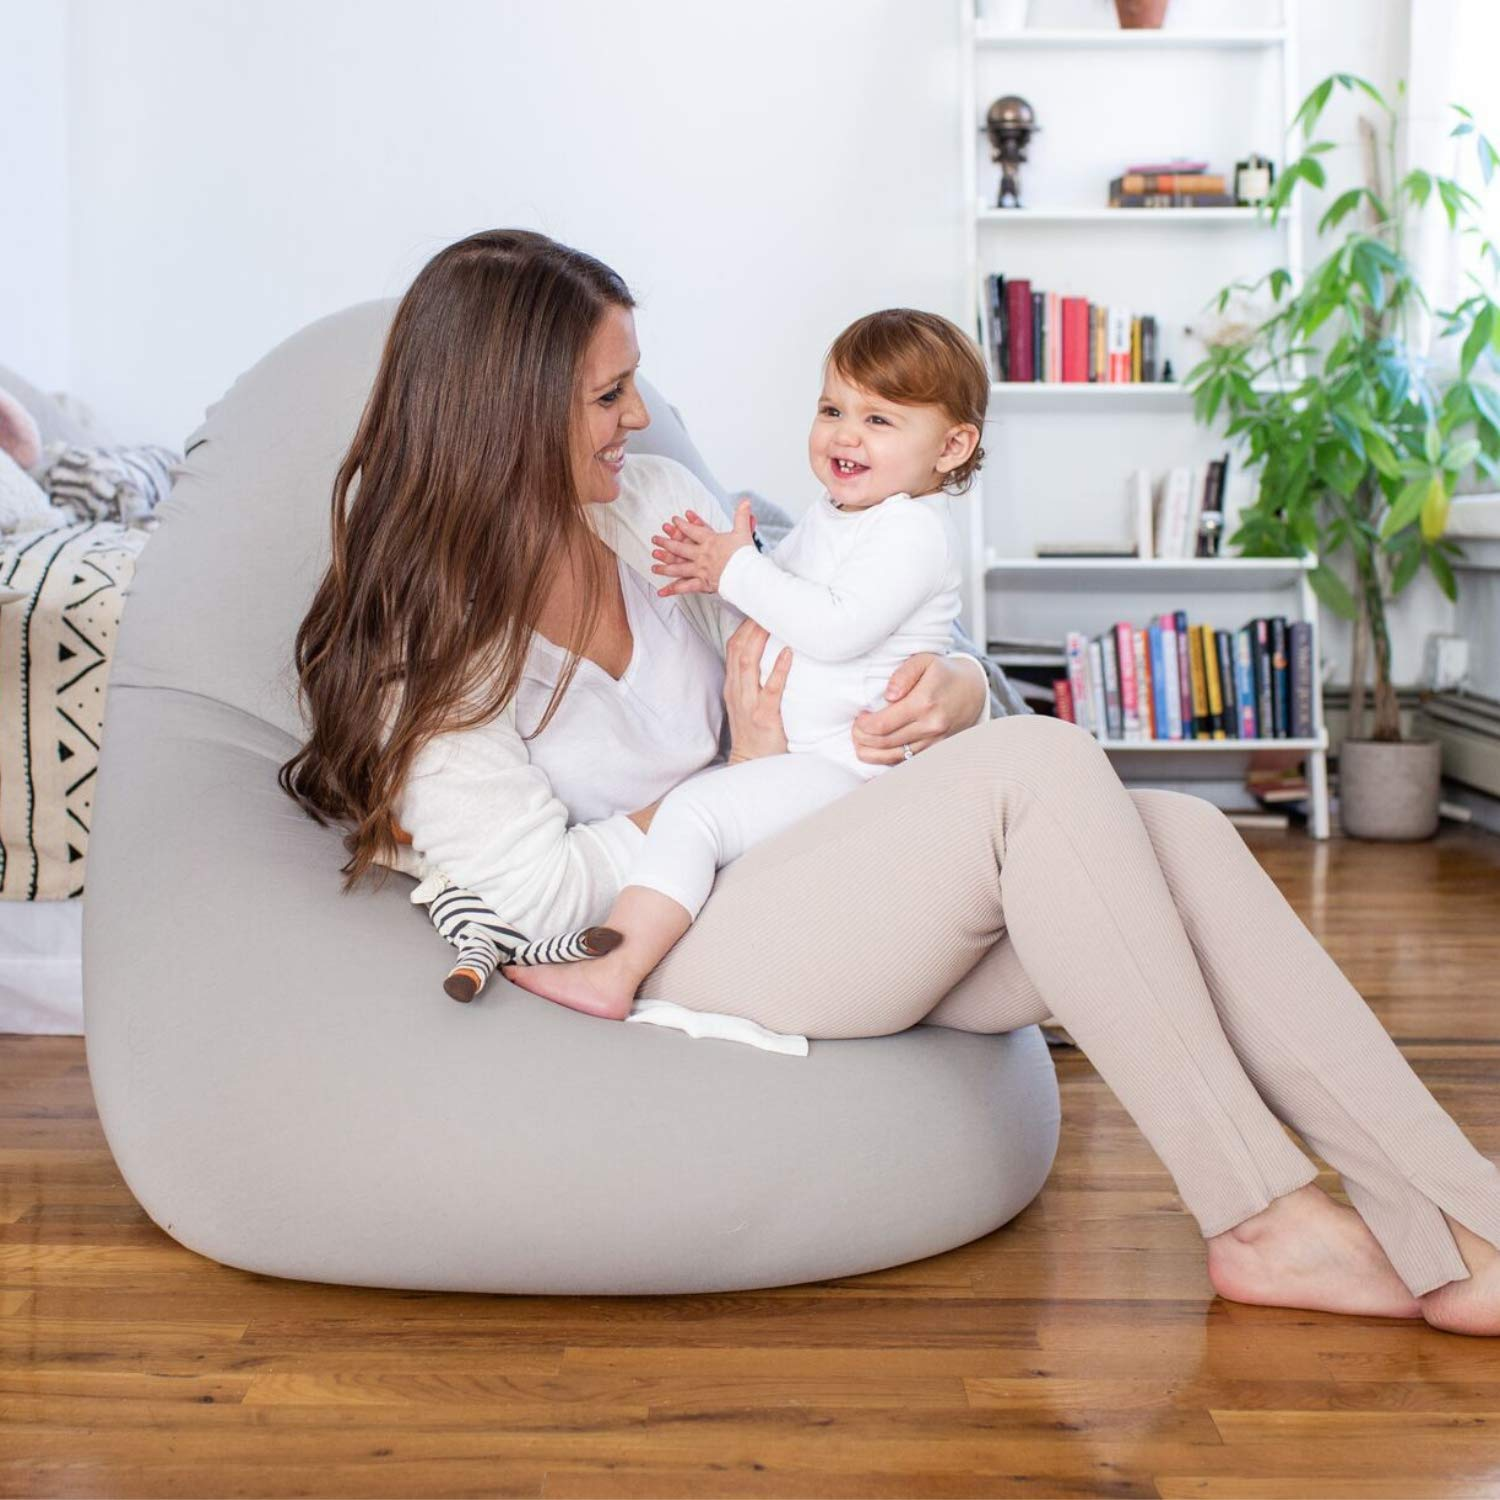 Pleasing Moon Pod Ultra Soft Bean Bags Chairs For Kids Teens Adults Anti Anxiety Float Chair Pabps2019 Chair Design Images Pabps2019Com